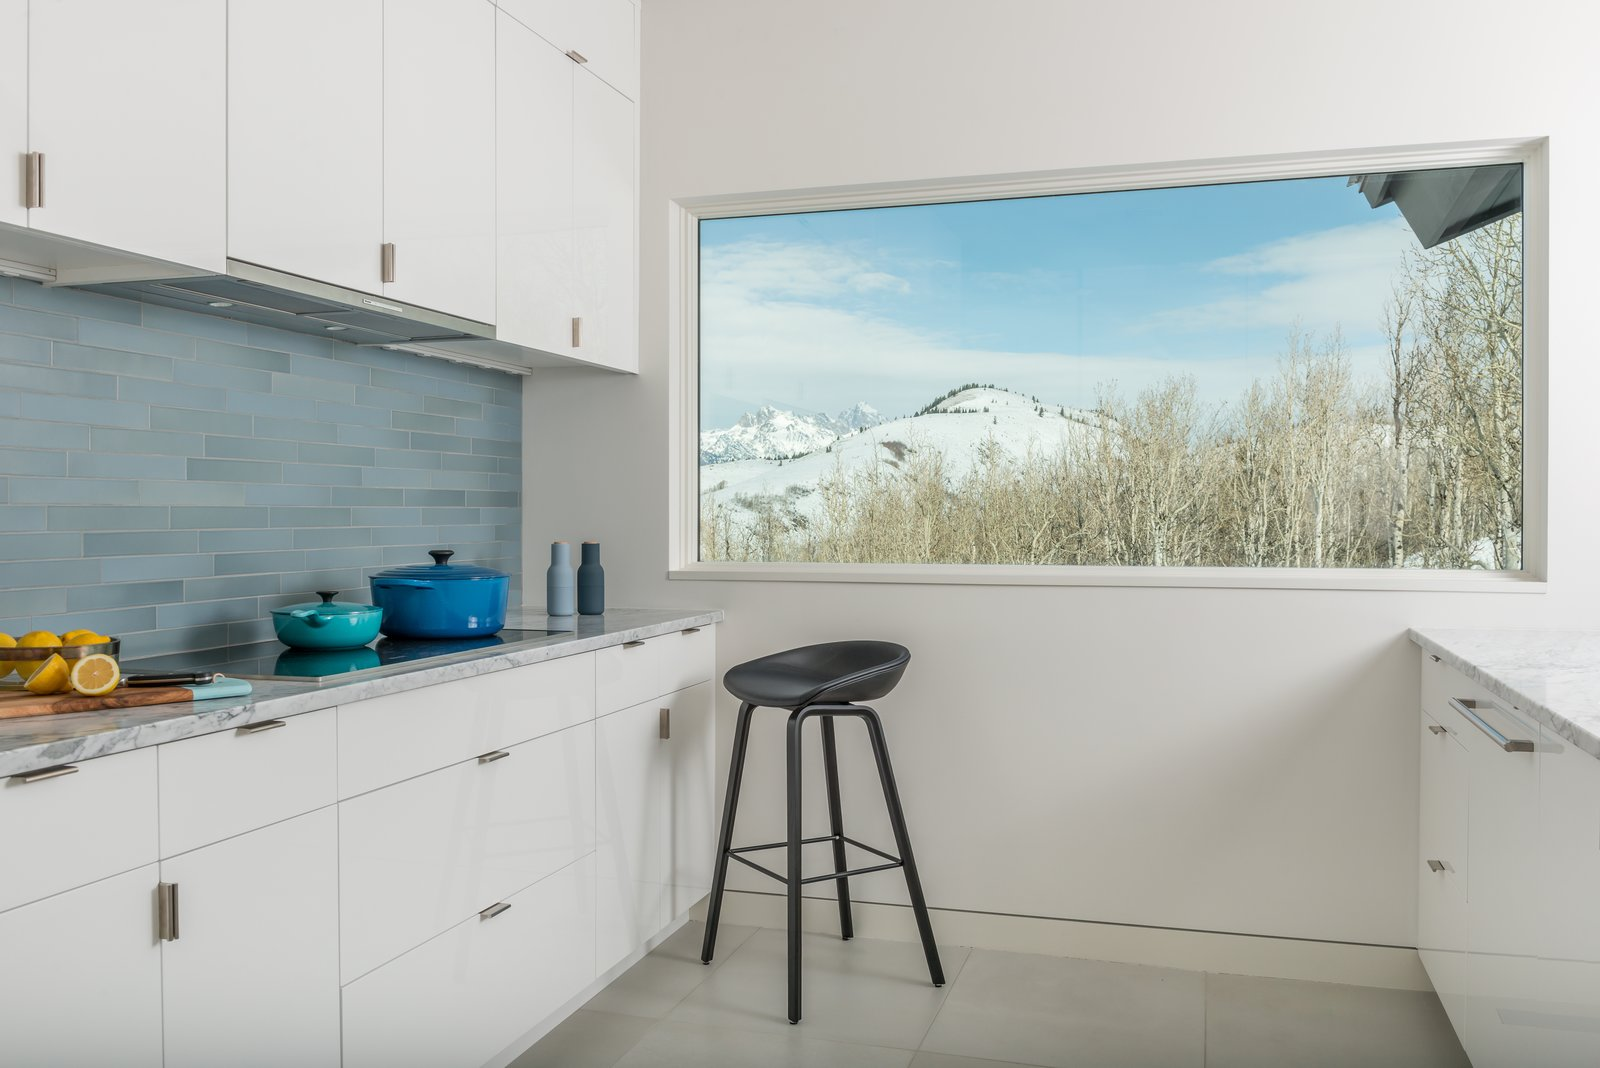 Honed, white Carrera marble countertops blend with exterior views to the Teton Mountain Range.